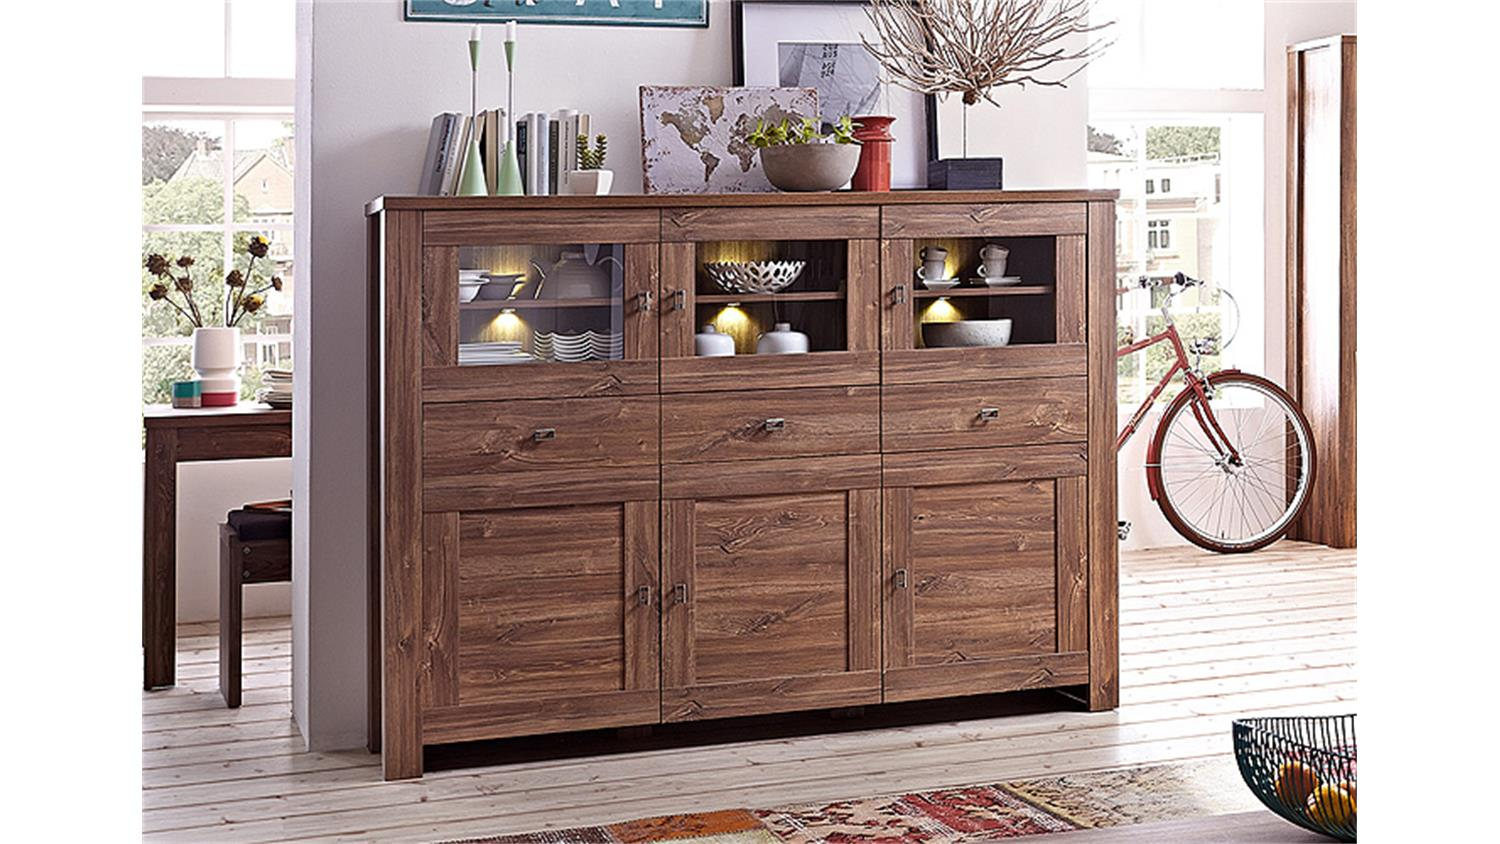 highboard br ssel sideboard in akazie dunkel inkl led. Black Bedroom Furniture Sets. Home Design Ideas